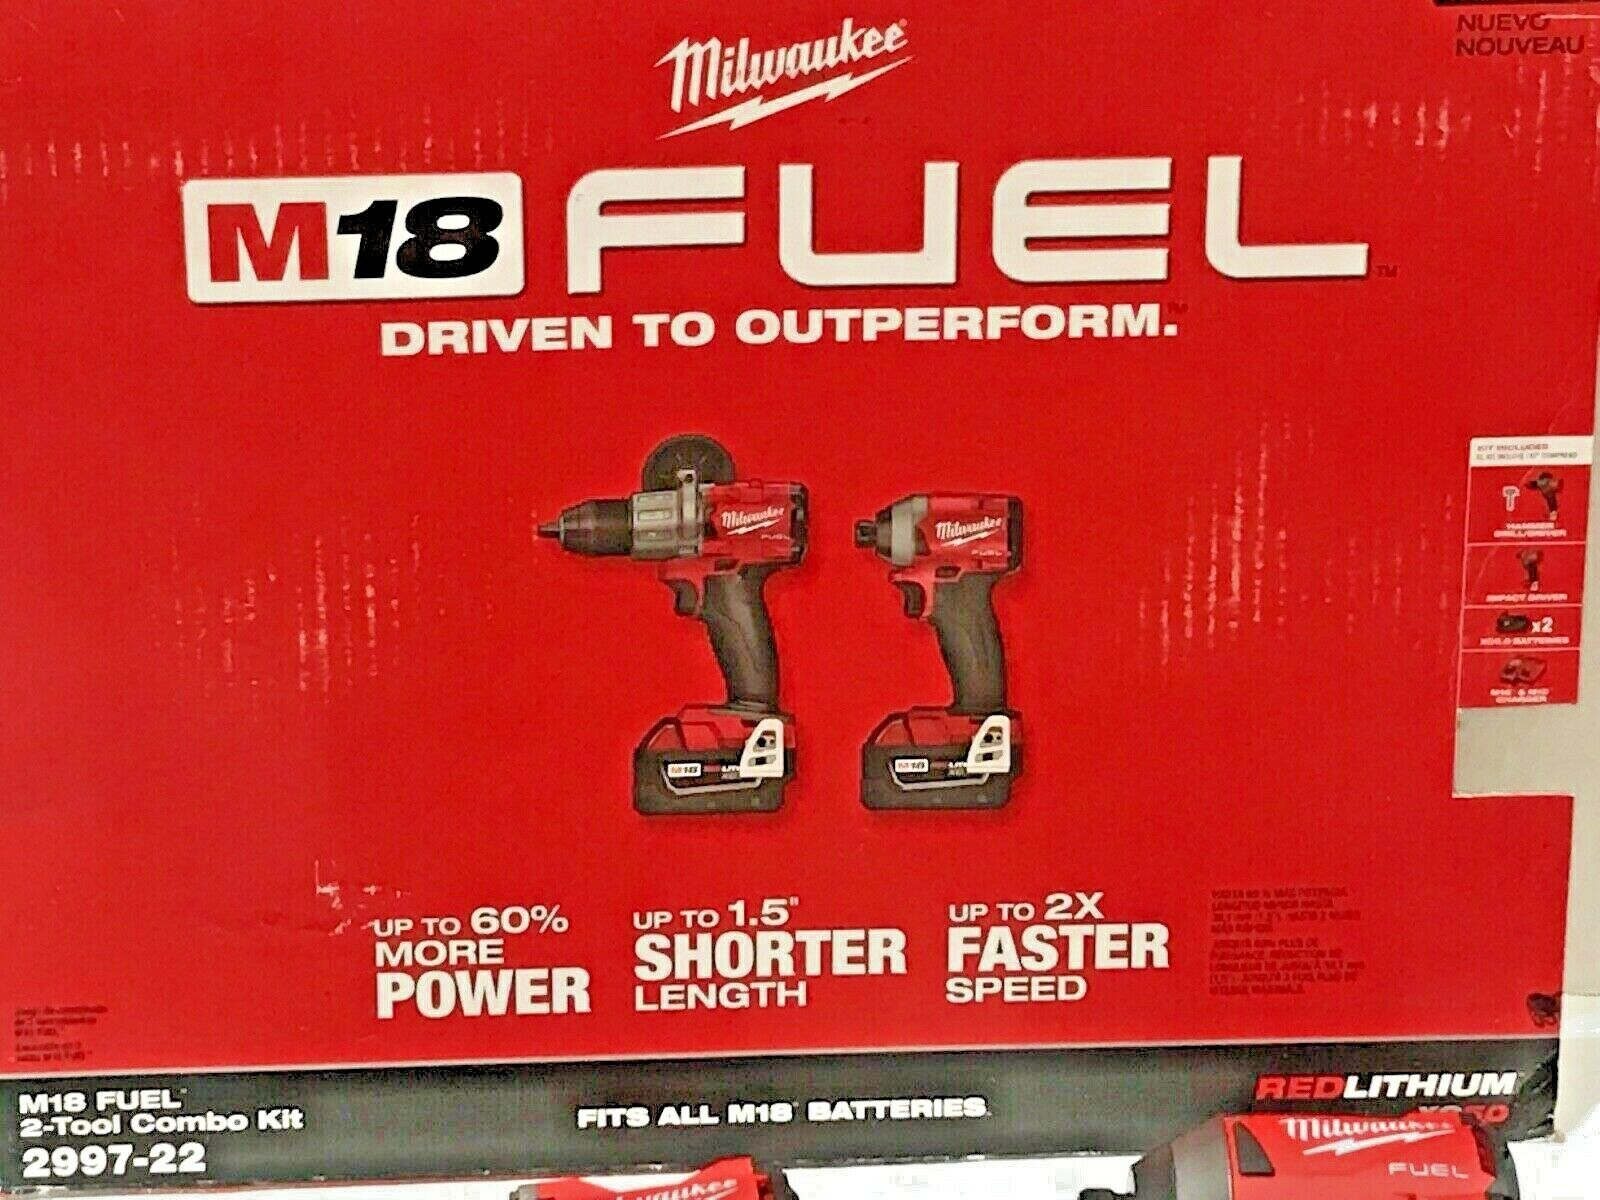 MILWAUKEE M18 GEN 3 FUEL 2 TOOL KIT 1/2 HAMMER DRILL 1/4 STU